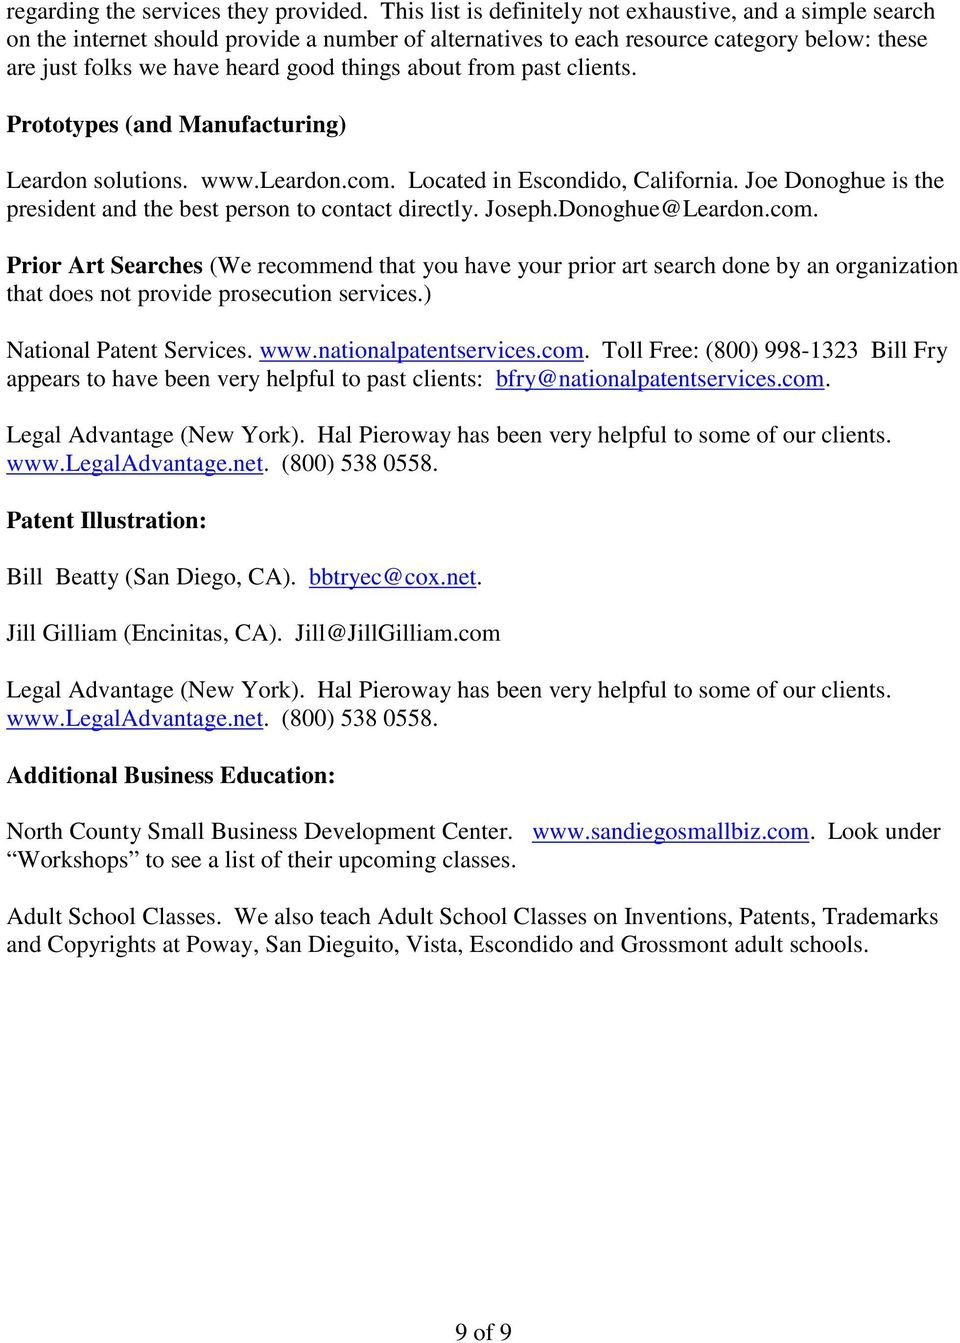 about from past clients. Prototypes (and Manufacturing) Leardon solutions. www.leardon.com. Located in Escondido, California. Joe Donoghue is the president and the best person to contact directly.